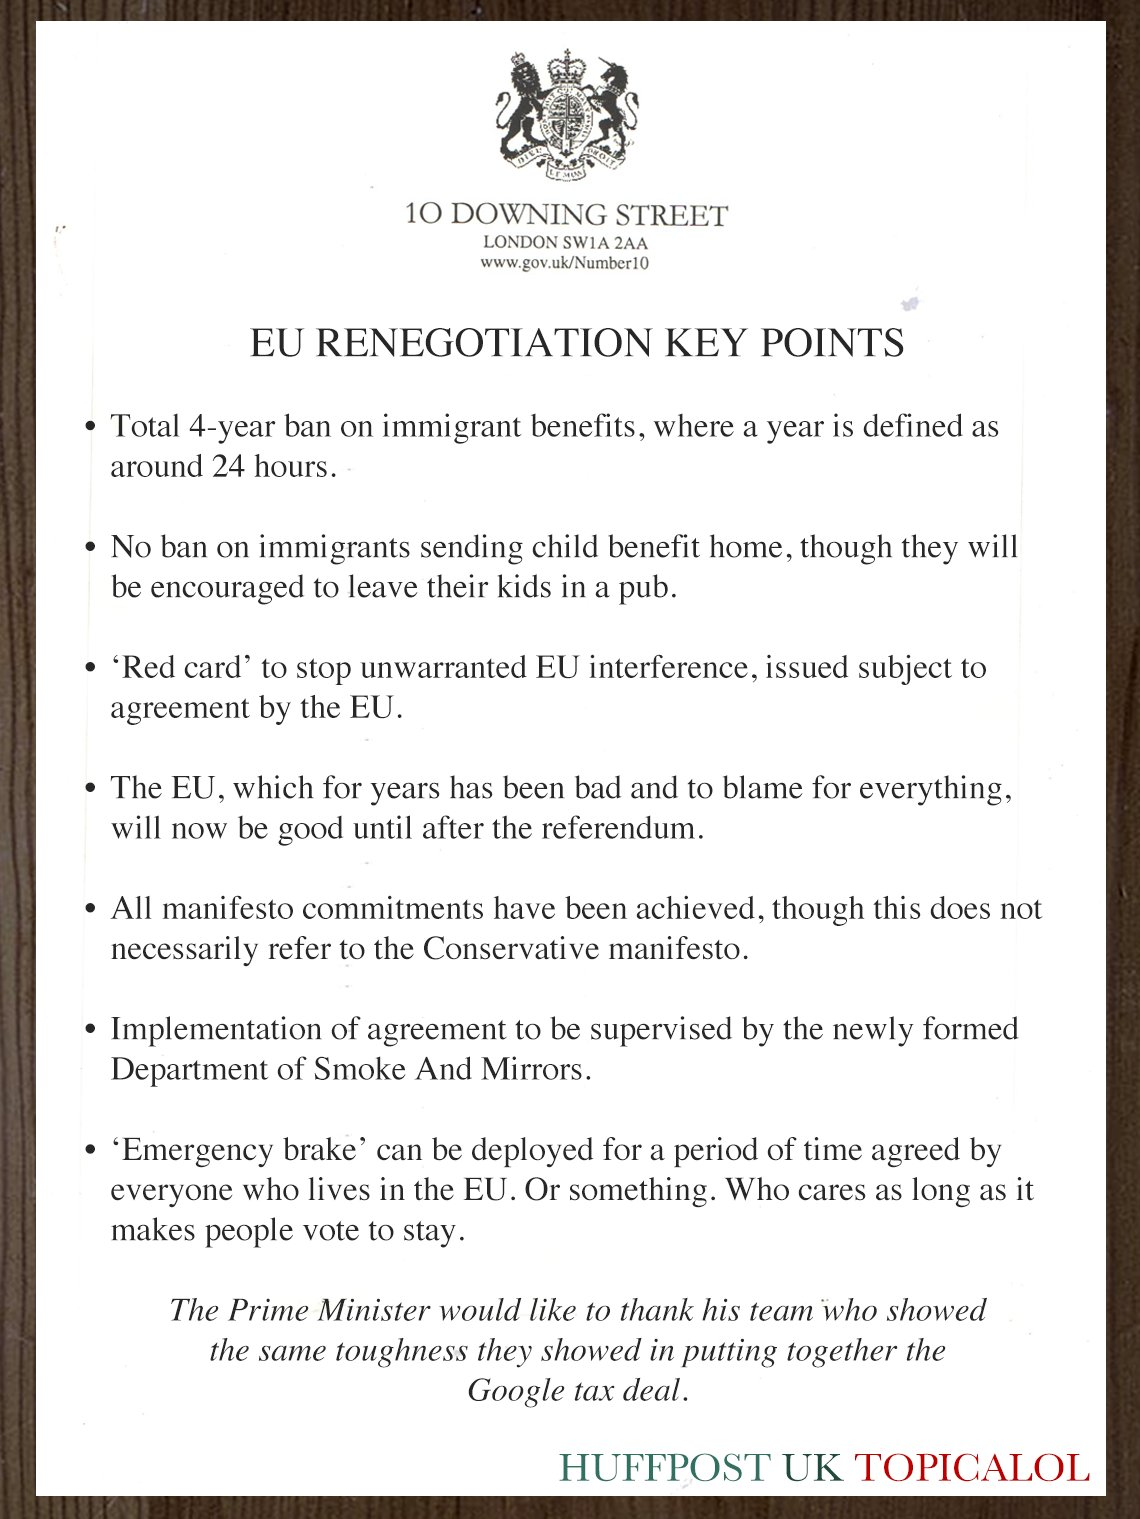 EU renegotiation. Government document sums up key points.  (done for @huffpostukcom) https://t.co/Rhmydg0rw5